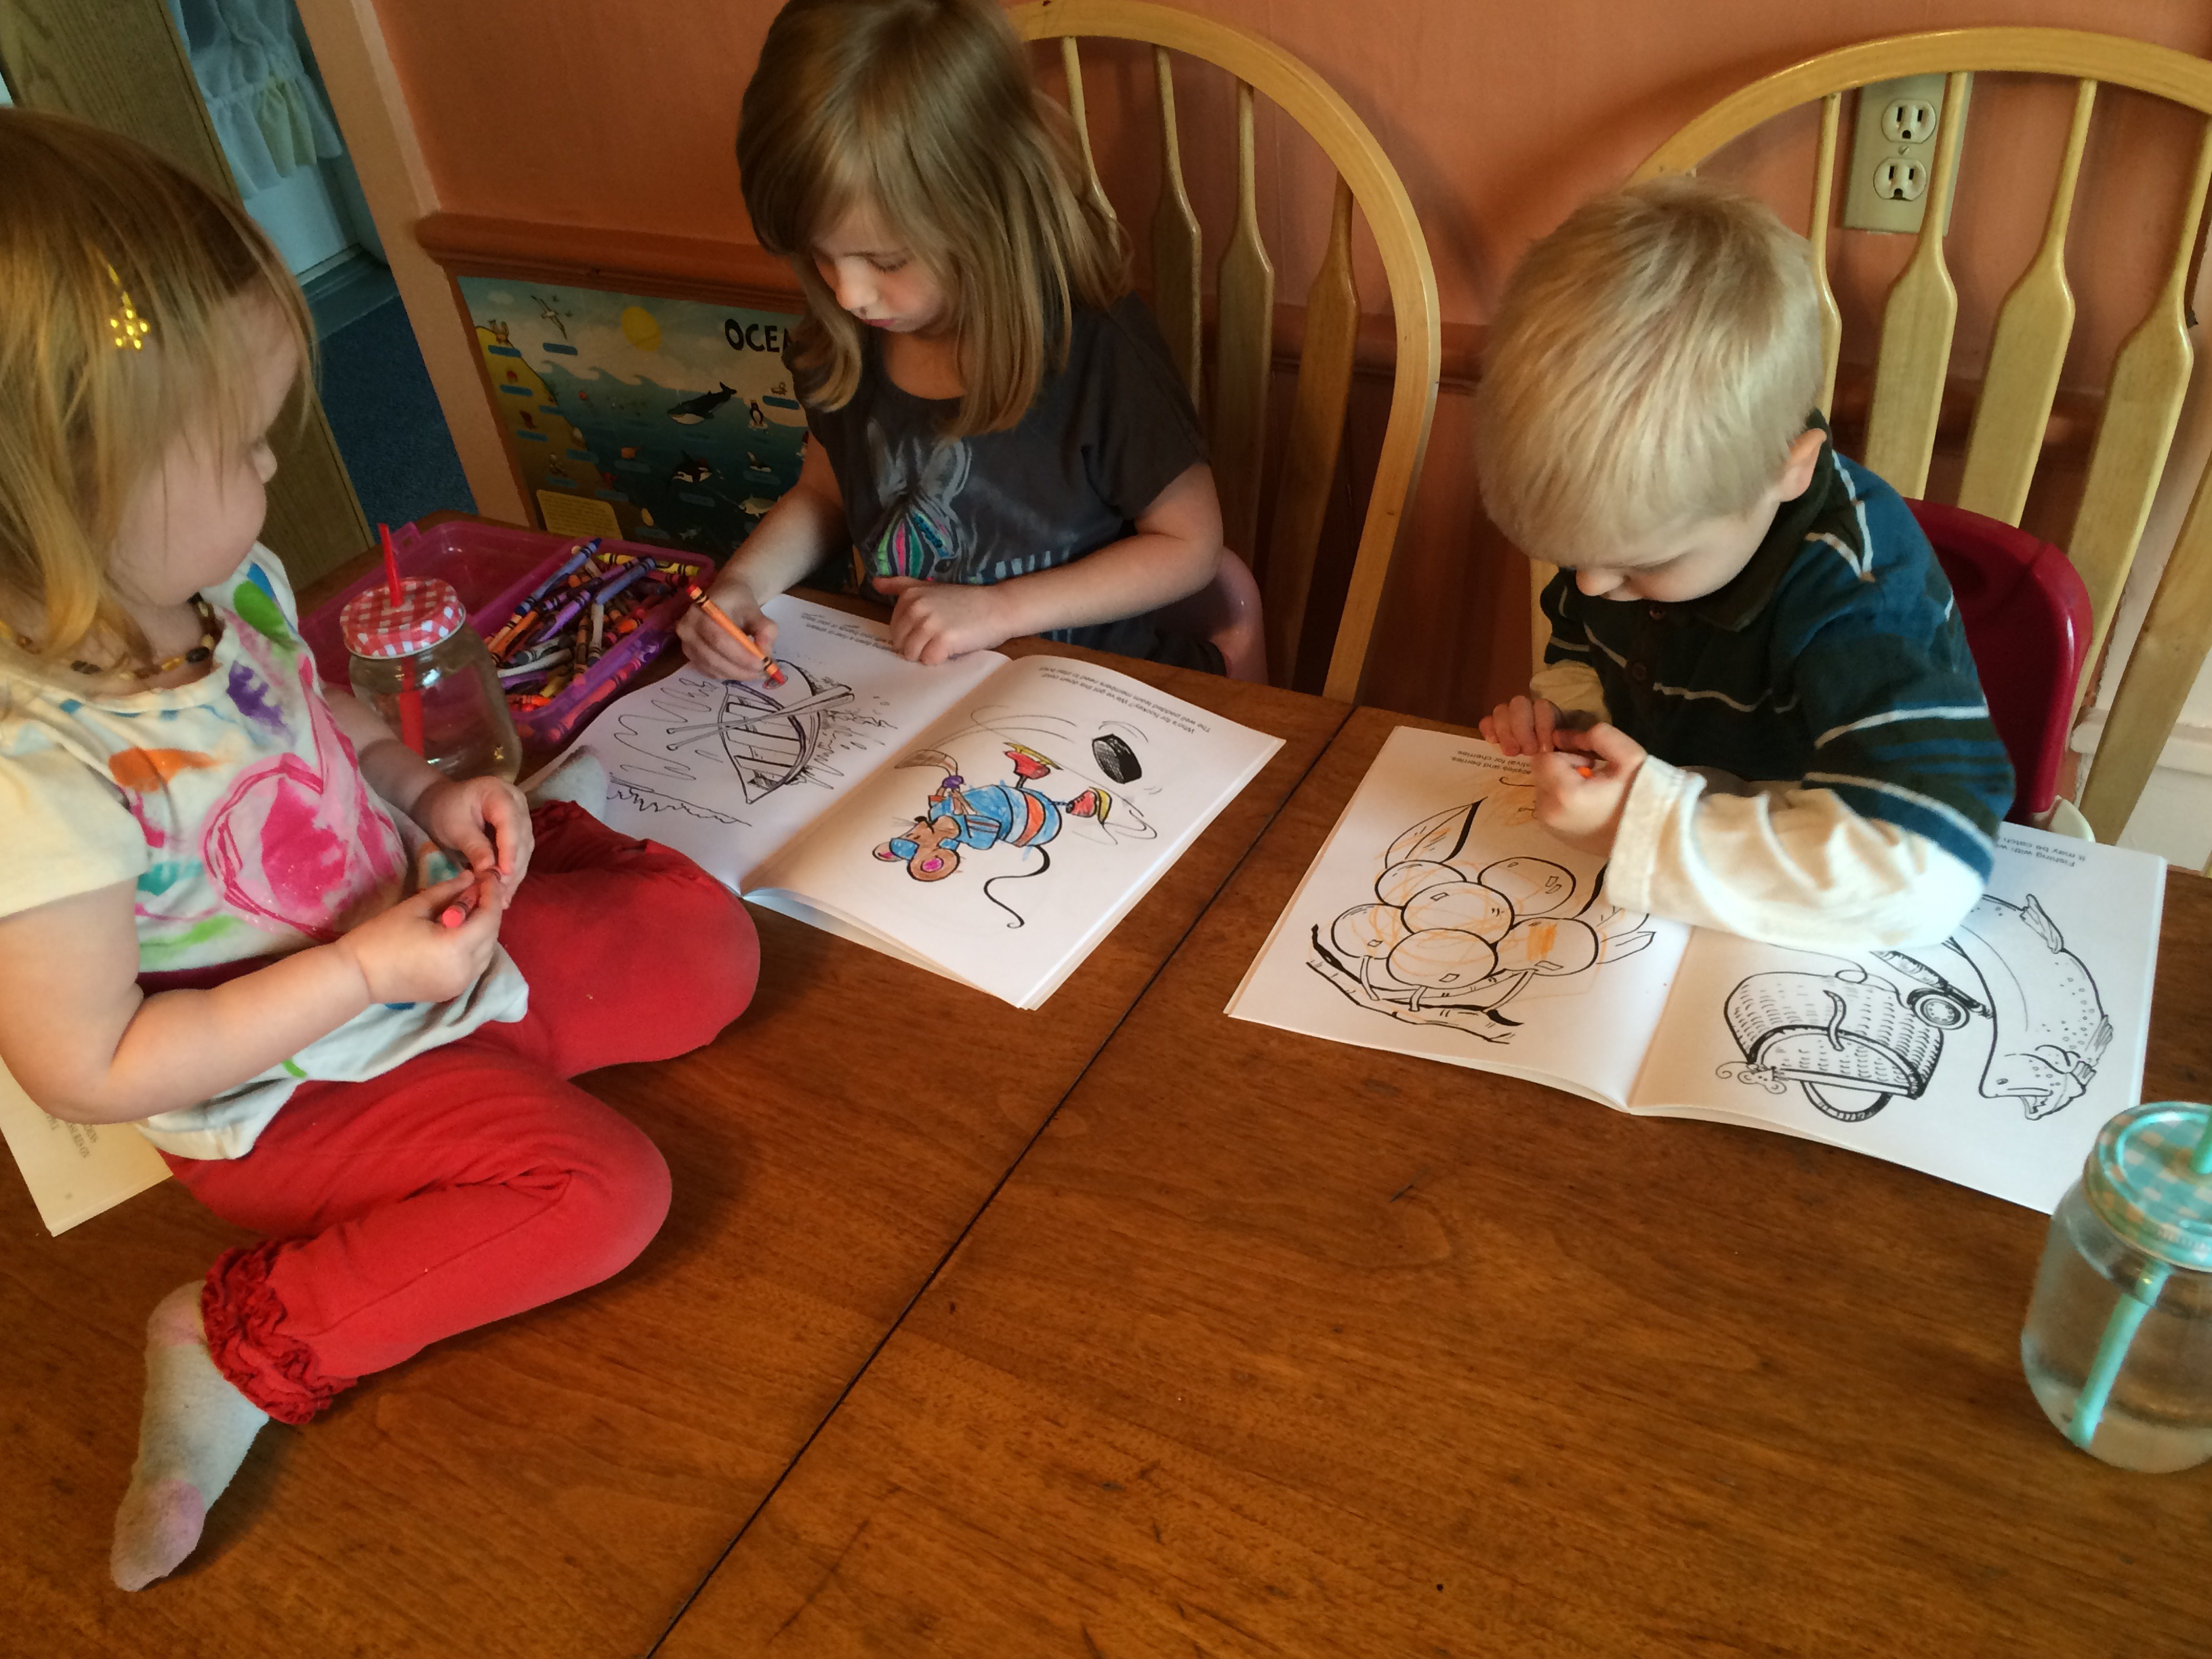 children coloring Michigan coloring books together